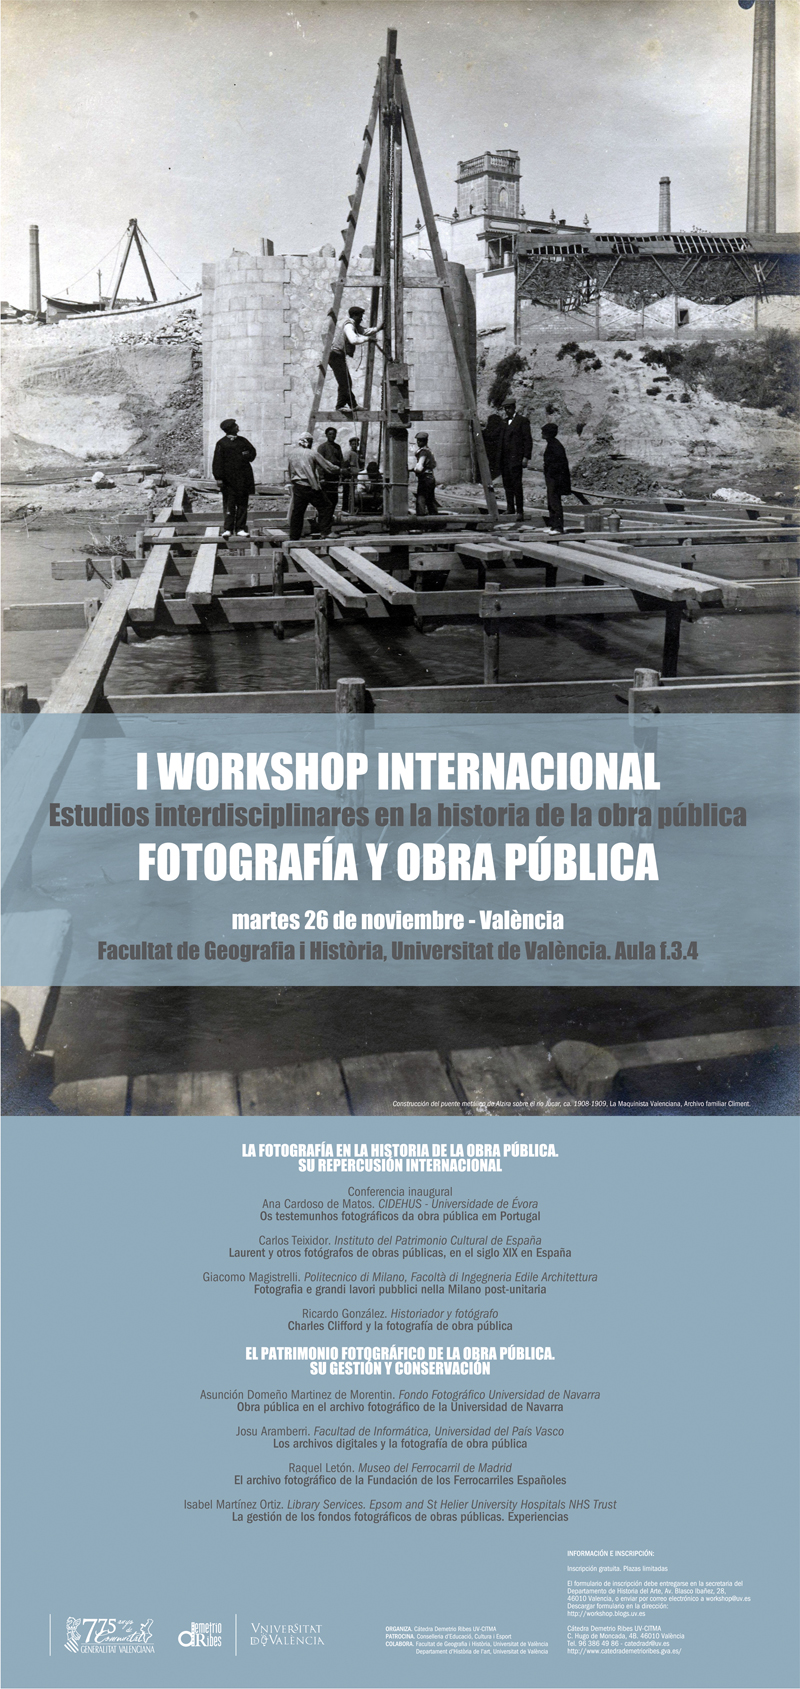 2013 1workshop cartell